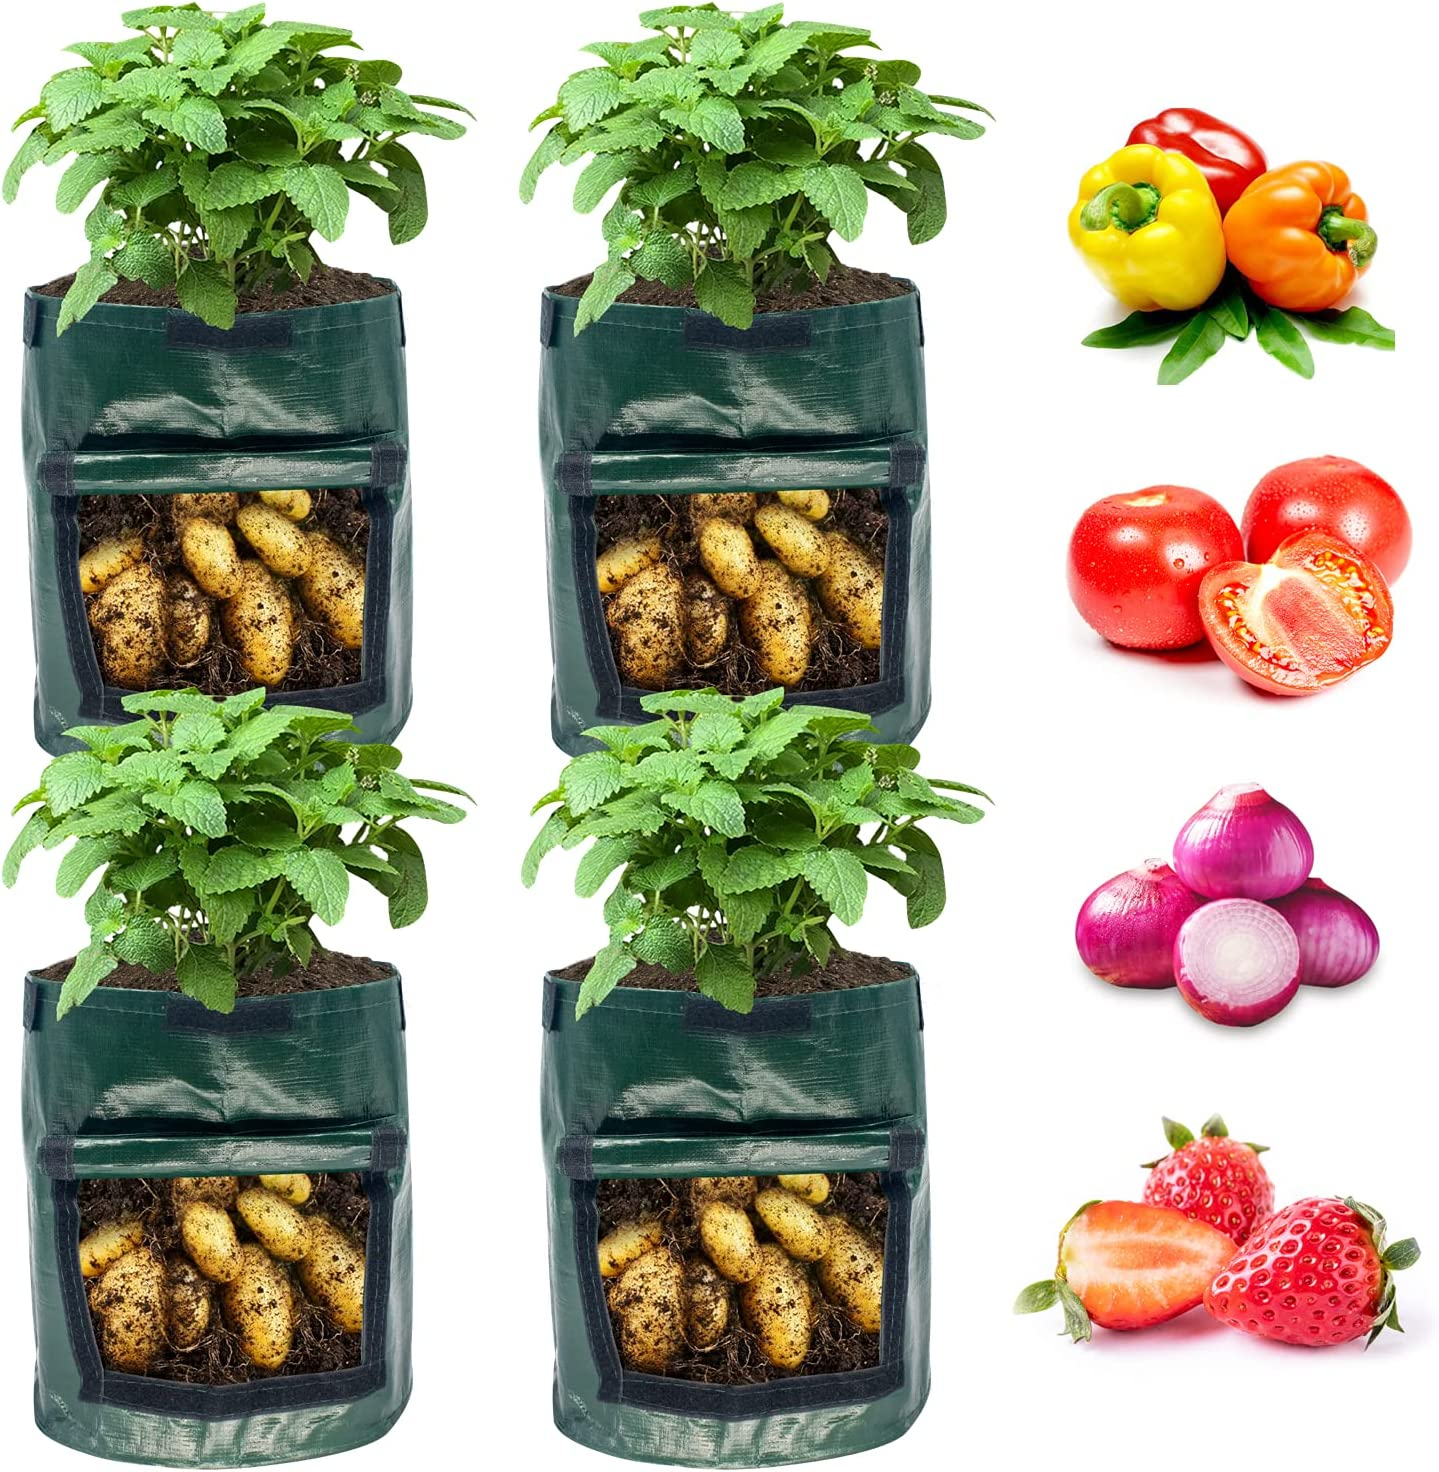 Potato Grow Bags 7 Gallon 4 Pack, NAMTSO Plant Grow Bags with Flap, Garden Grow Bags with Handles Heavy Duty Thickened 200GSM